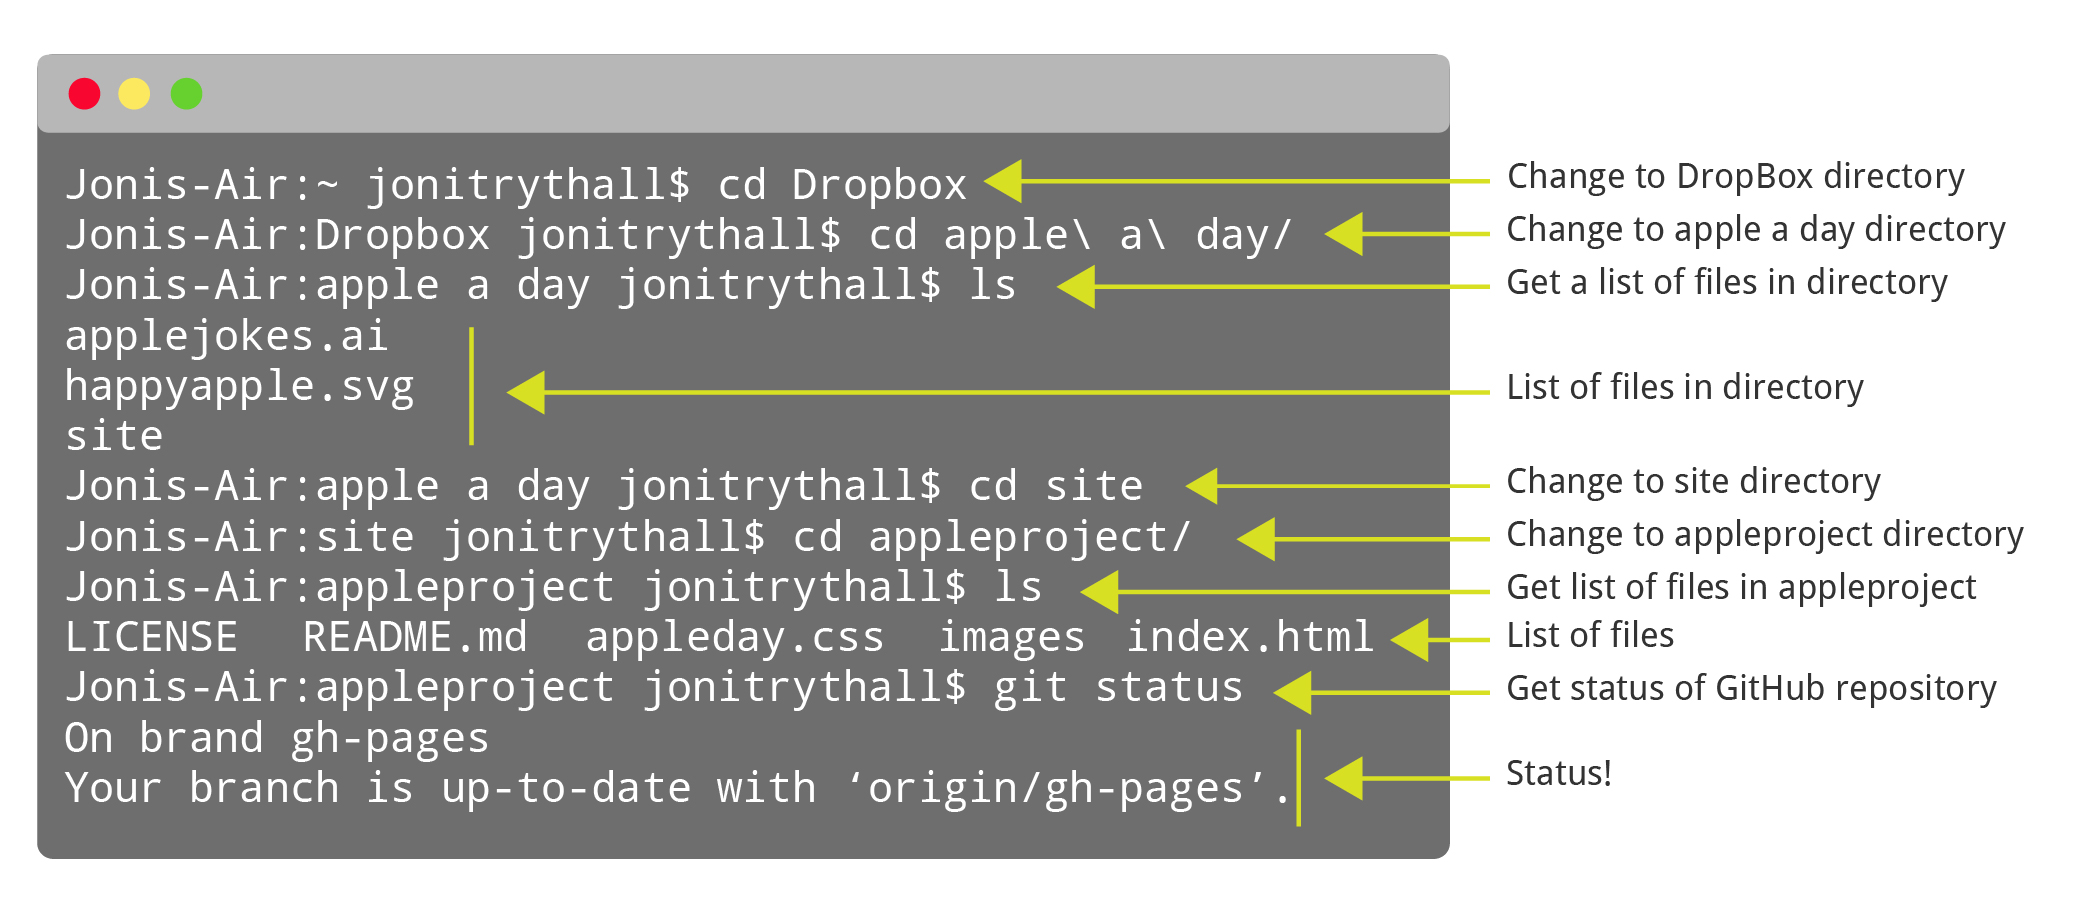 Preview of command line process to find Git repository and check status